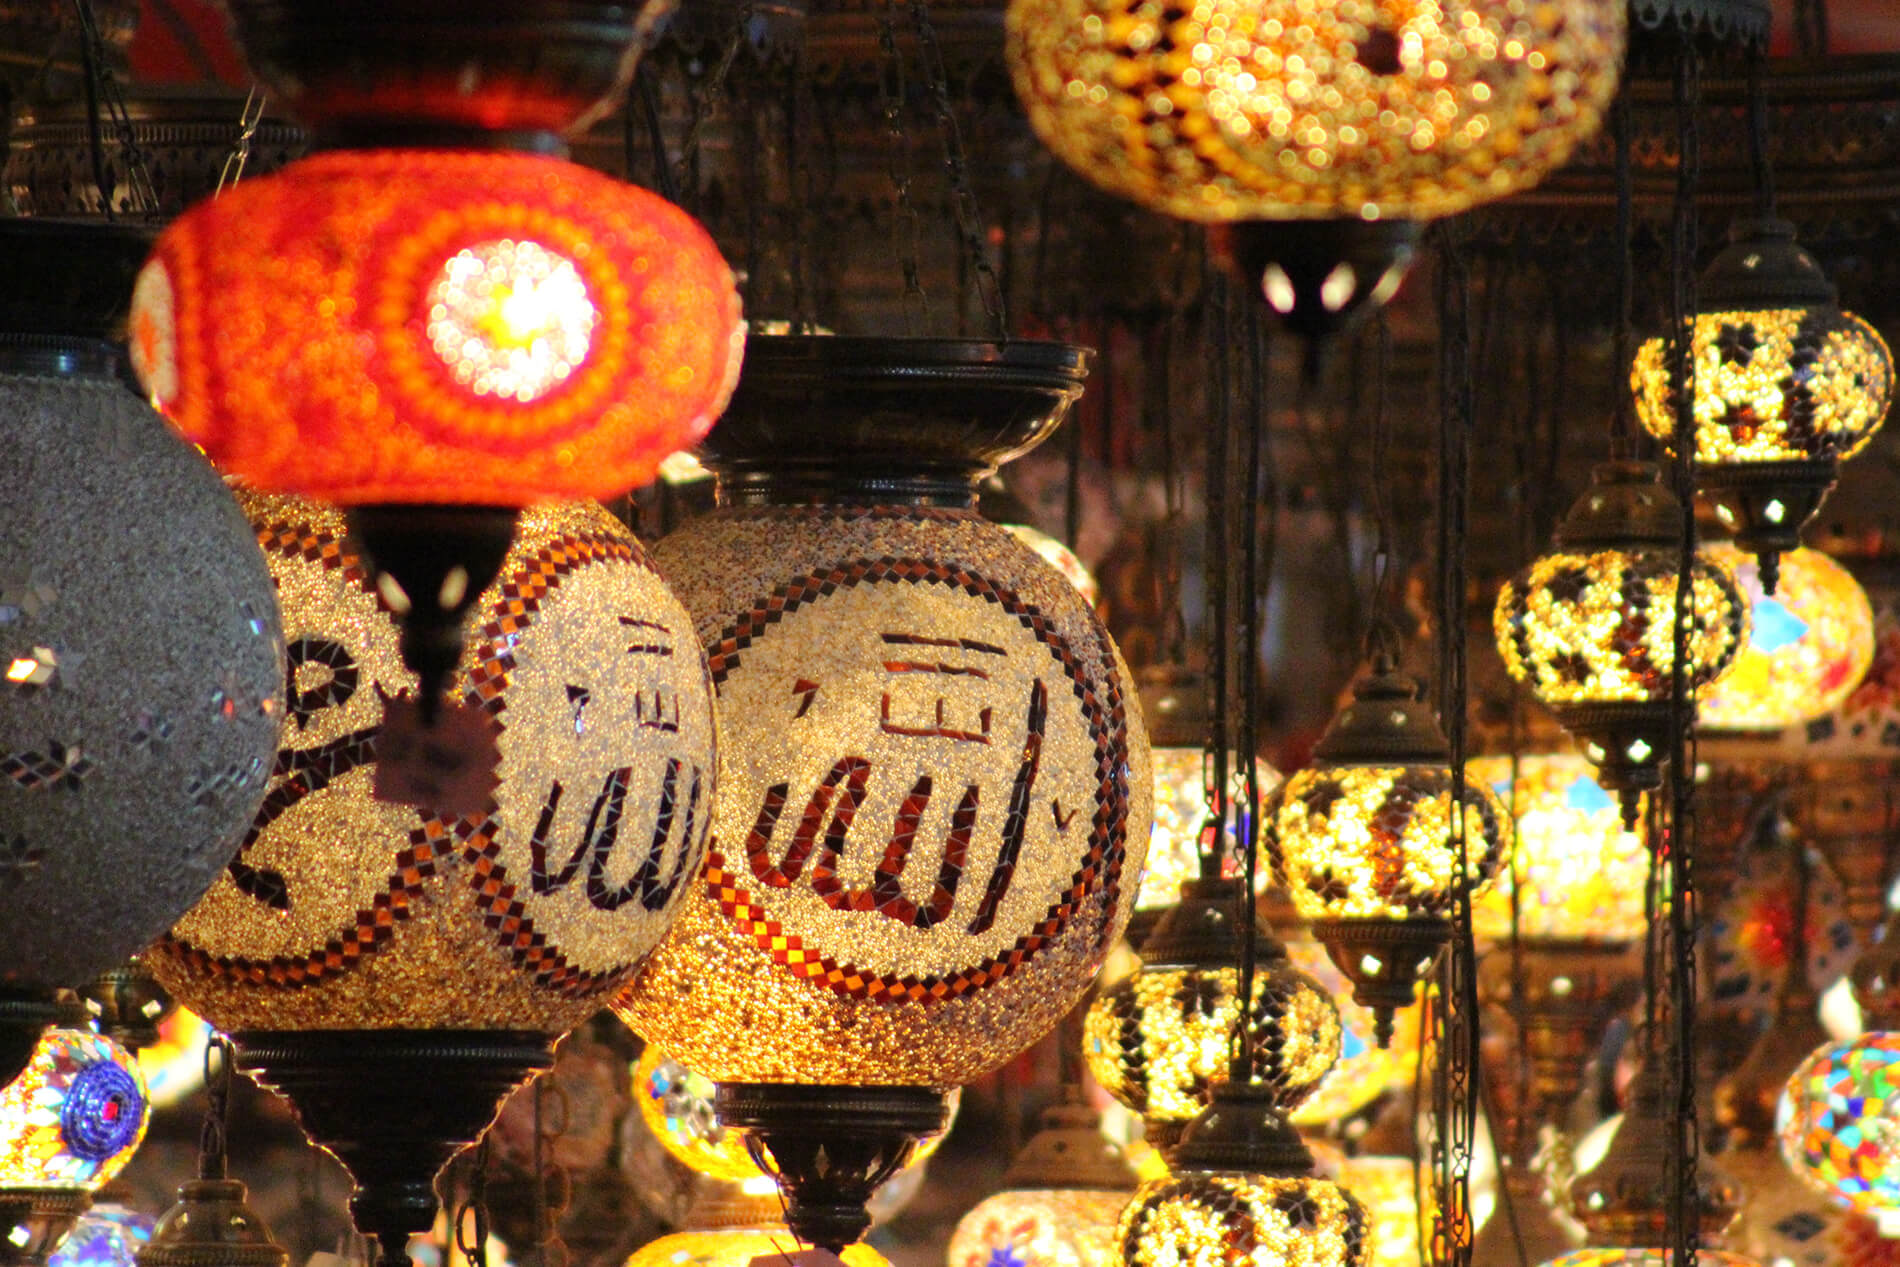 Things I experienced in Ramadan as a non-Muslim living in Muslim countries